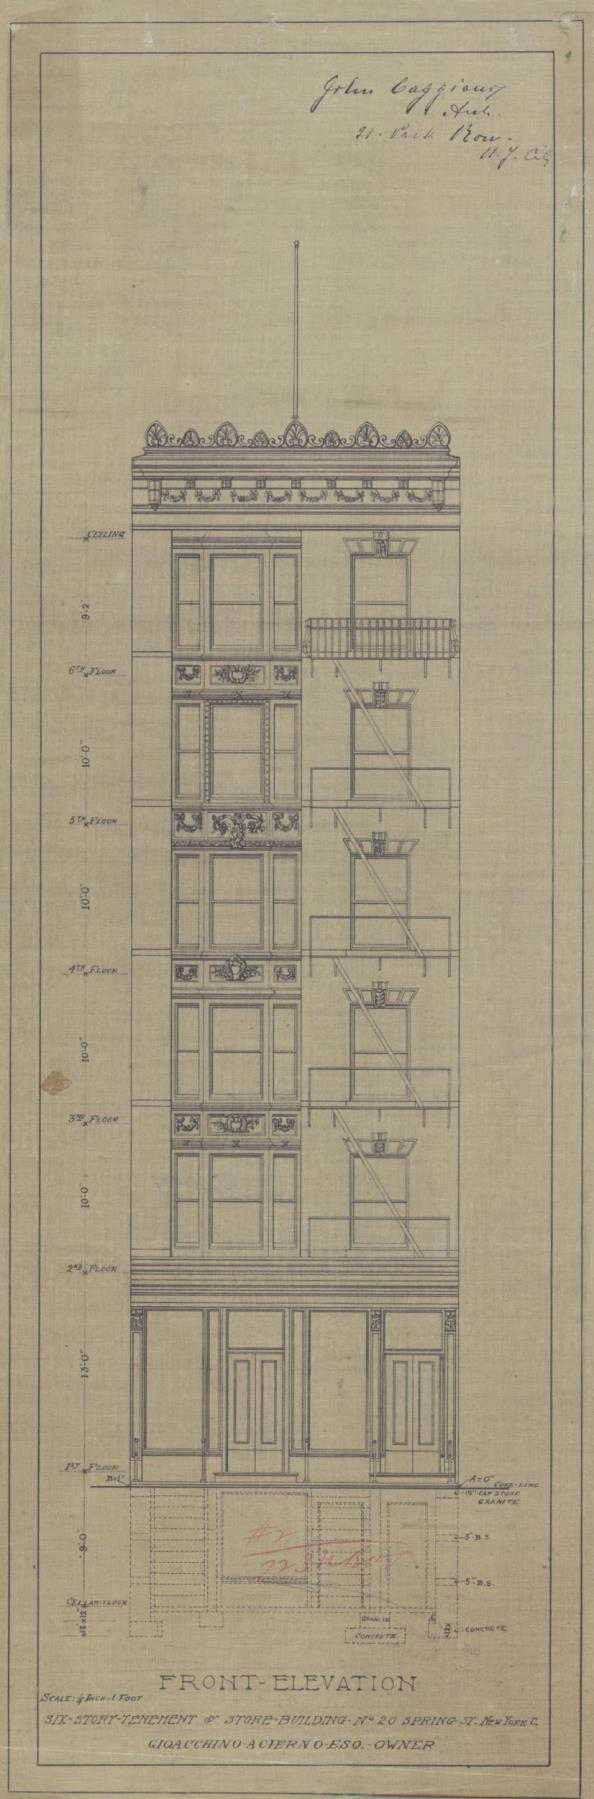 Six-Story Tenement & Store, Building No. 20 Spring Street, Front Elevation, 1905. John Caggiano, Architect. Department of Buildings Collection, NYC Municipal Archives.